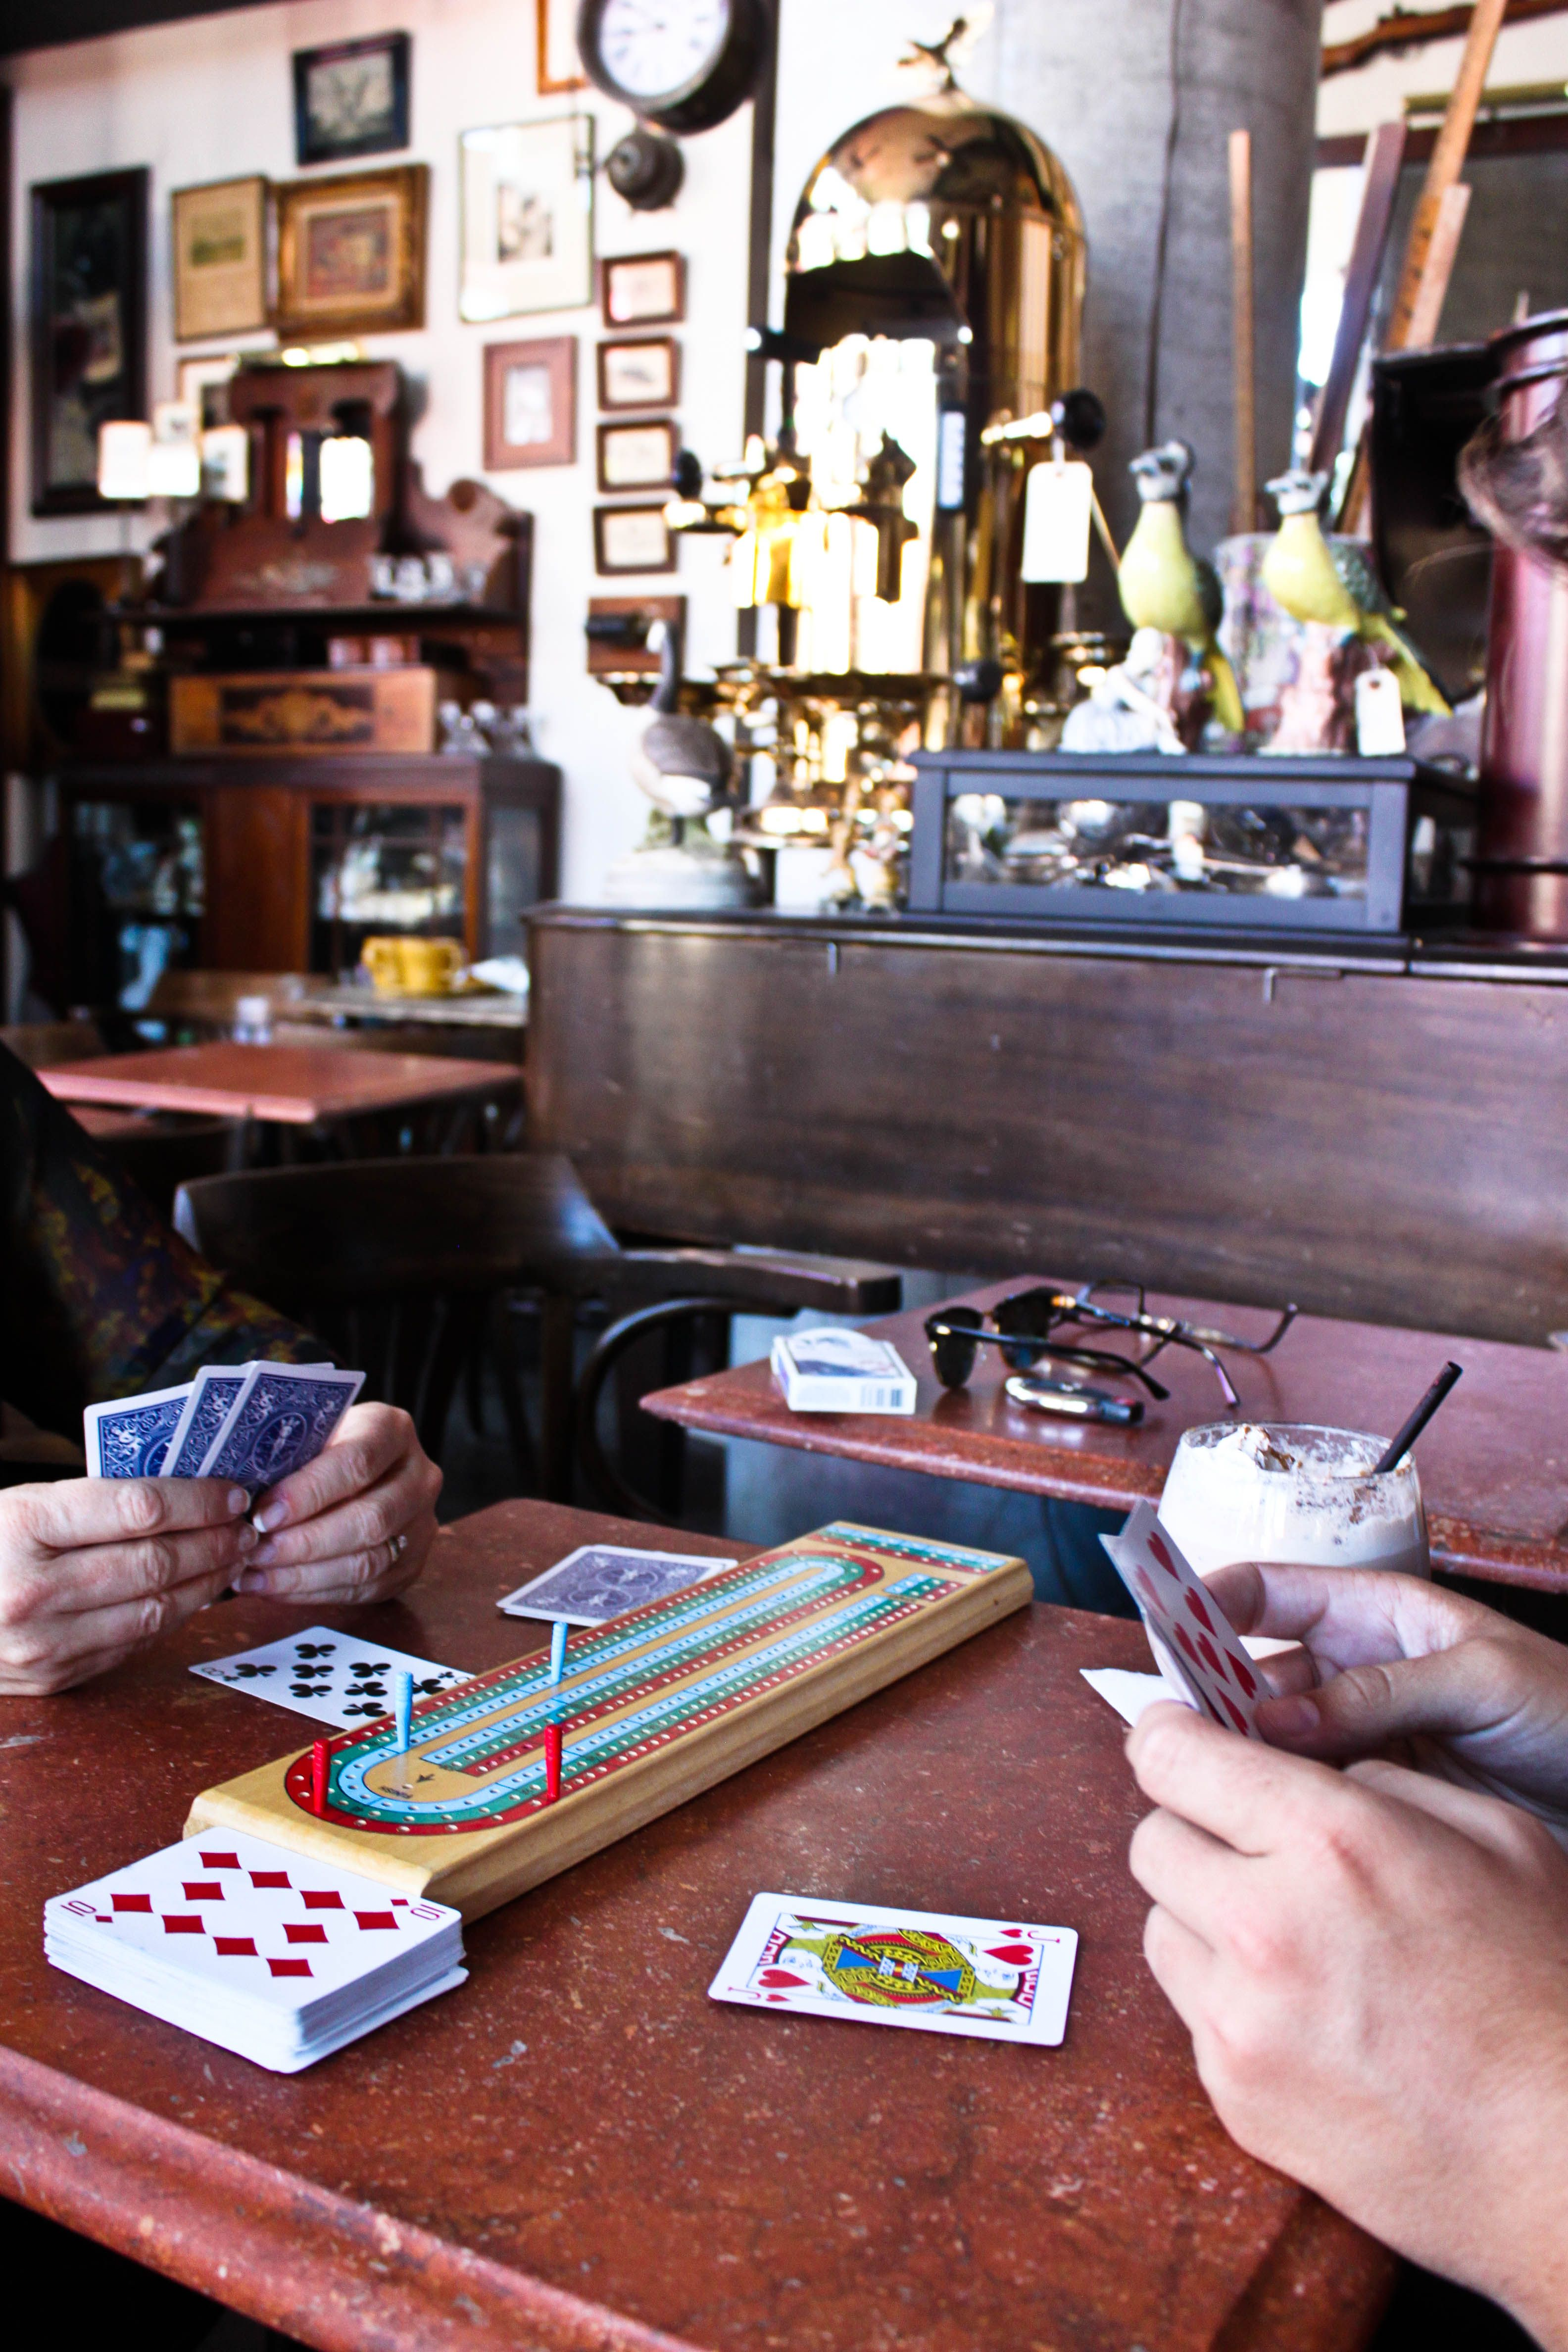 Love the idea of having small games or card games for